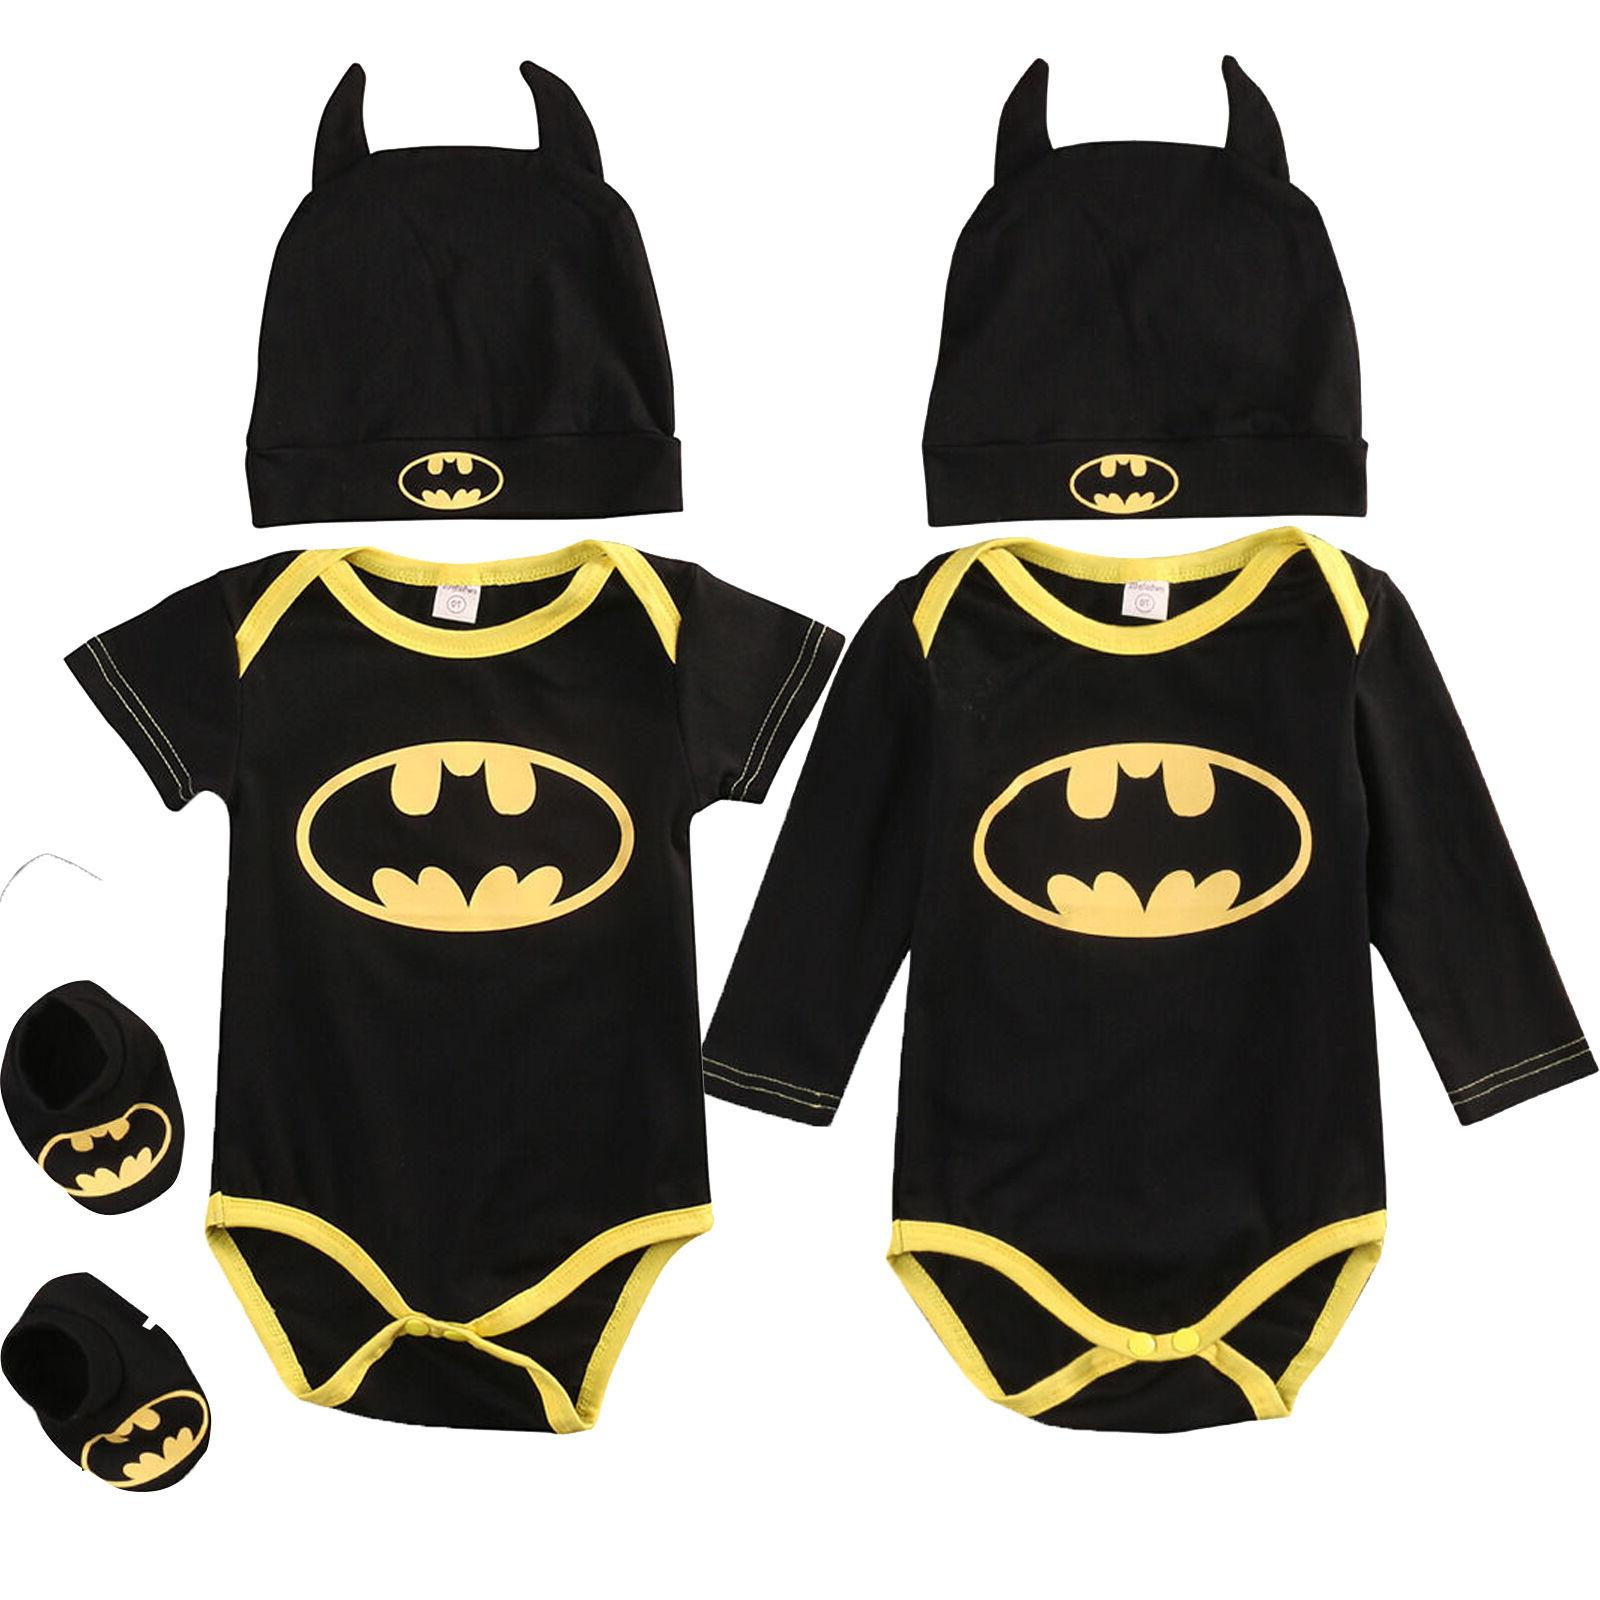 Newborn Toddler Batman 3Pcs USA